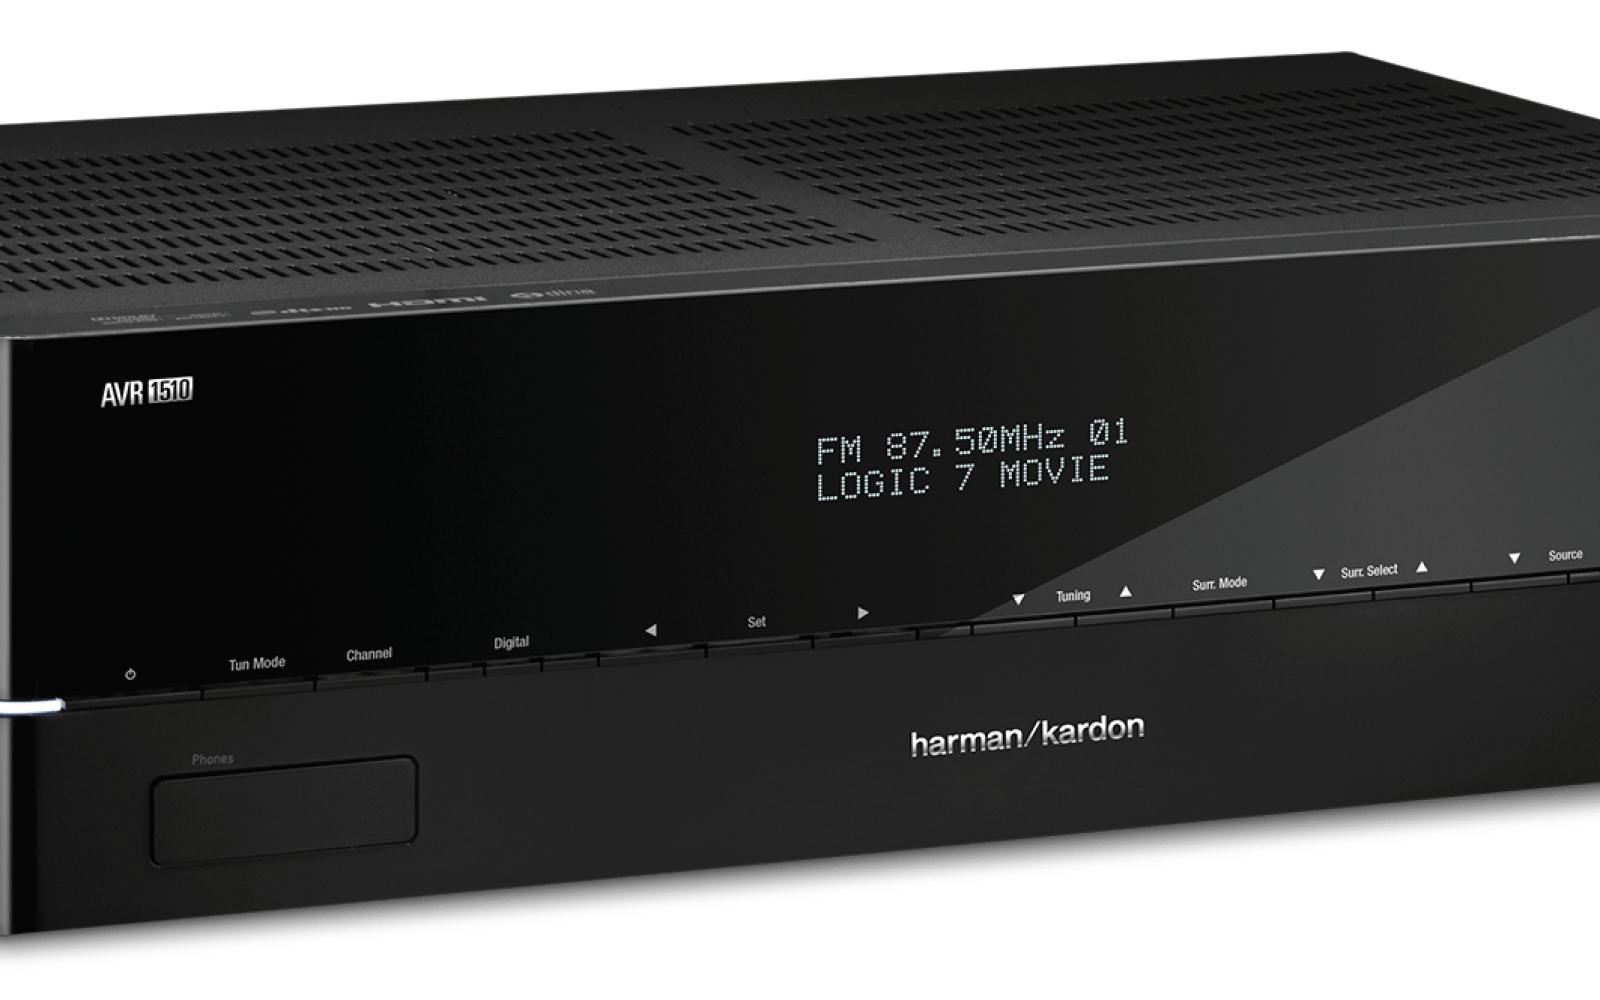 9to5toys Page 727 Of 1419 New Gear Reviews And Deals Download Image Avr Usb Programmer Pc Android Iphone Ipad Harman Kardon 1510 51 Channel 75 Watt Networked Av Receiver 200 Shipped Reg 361